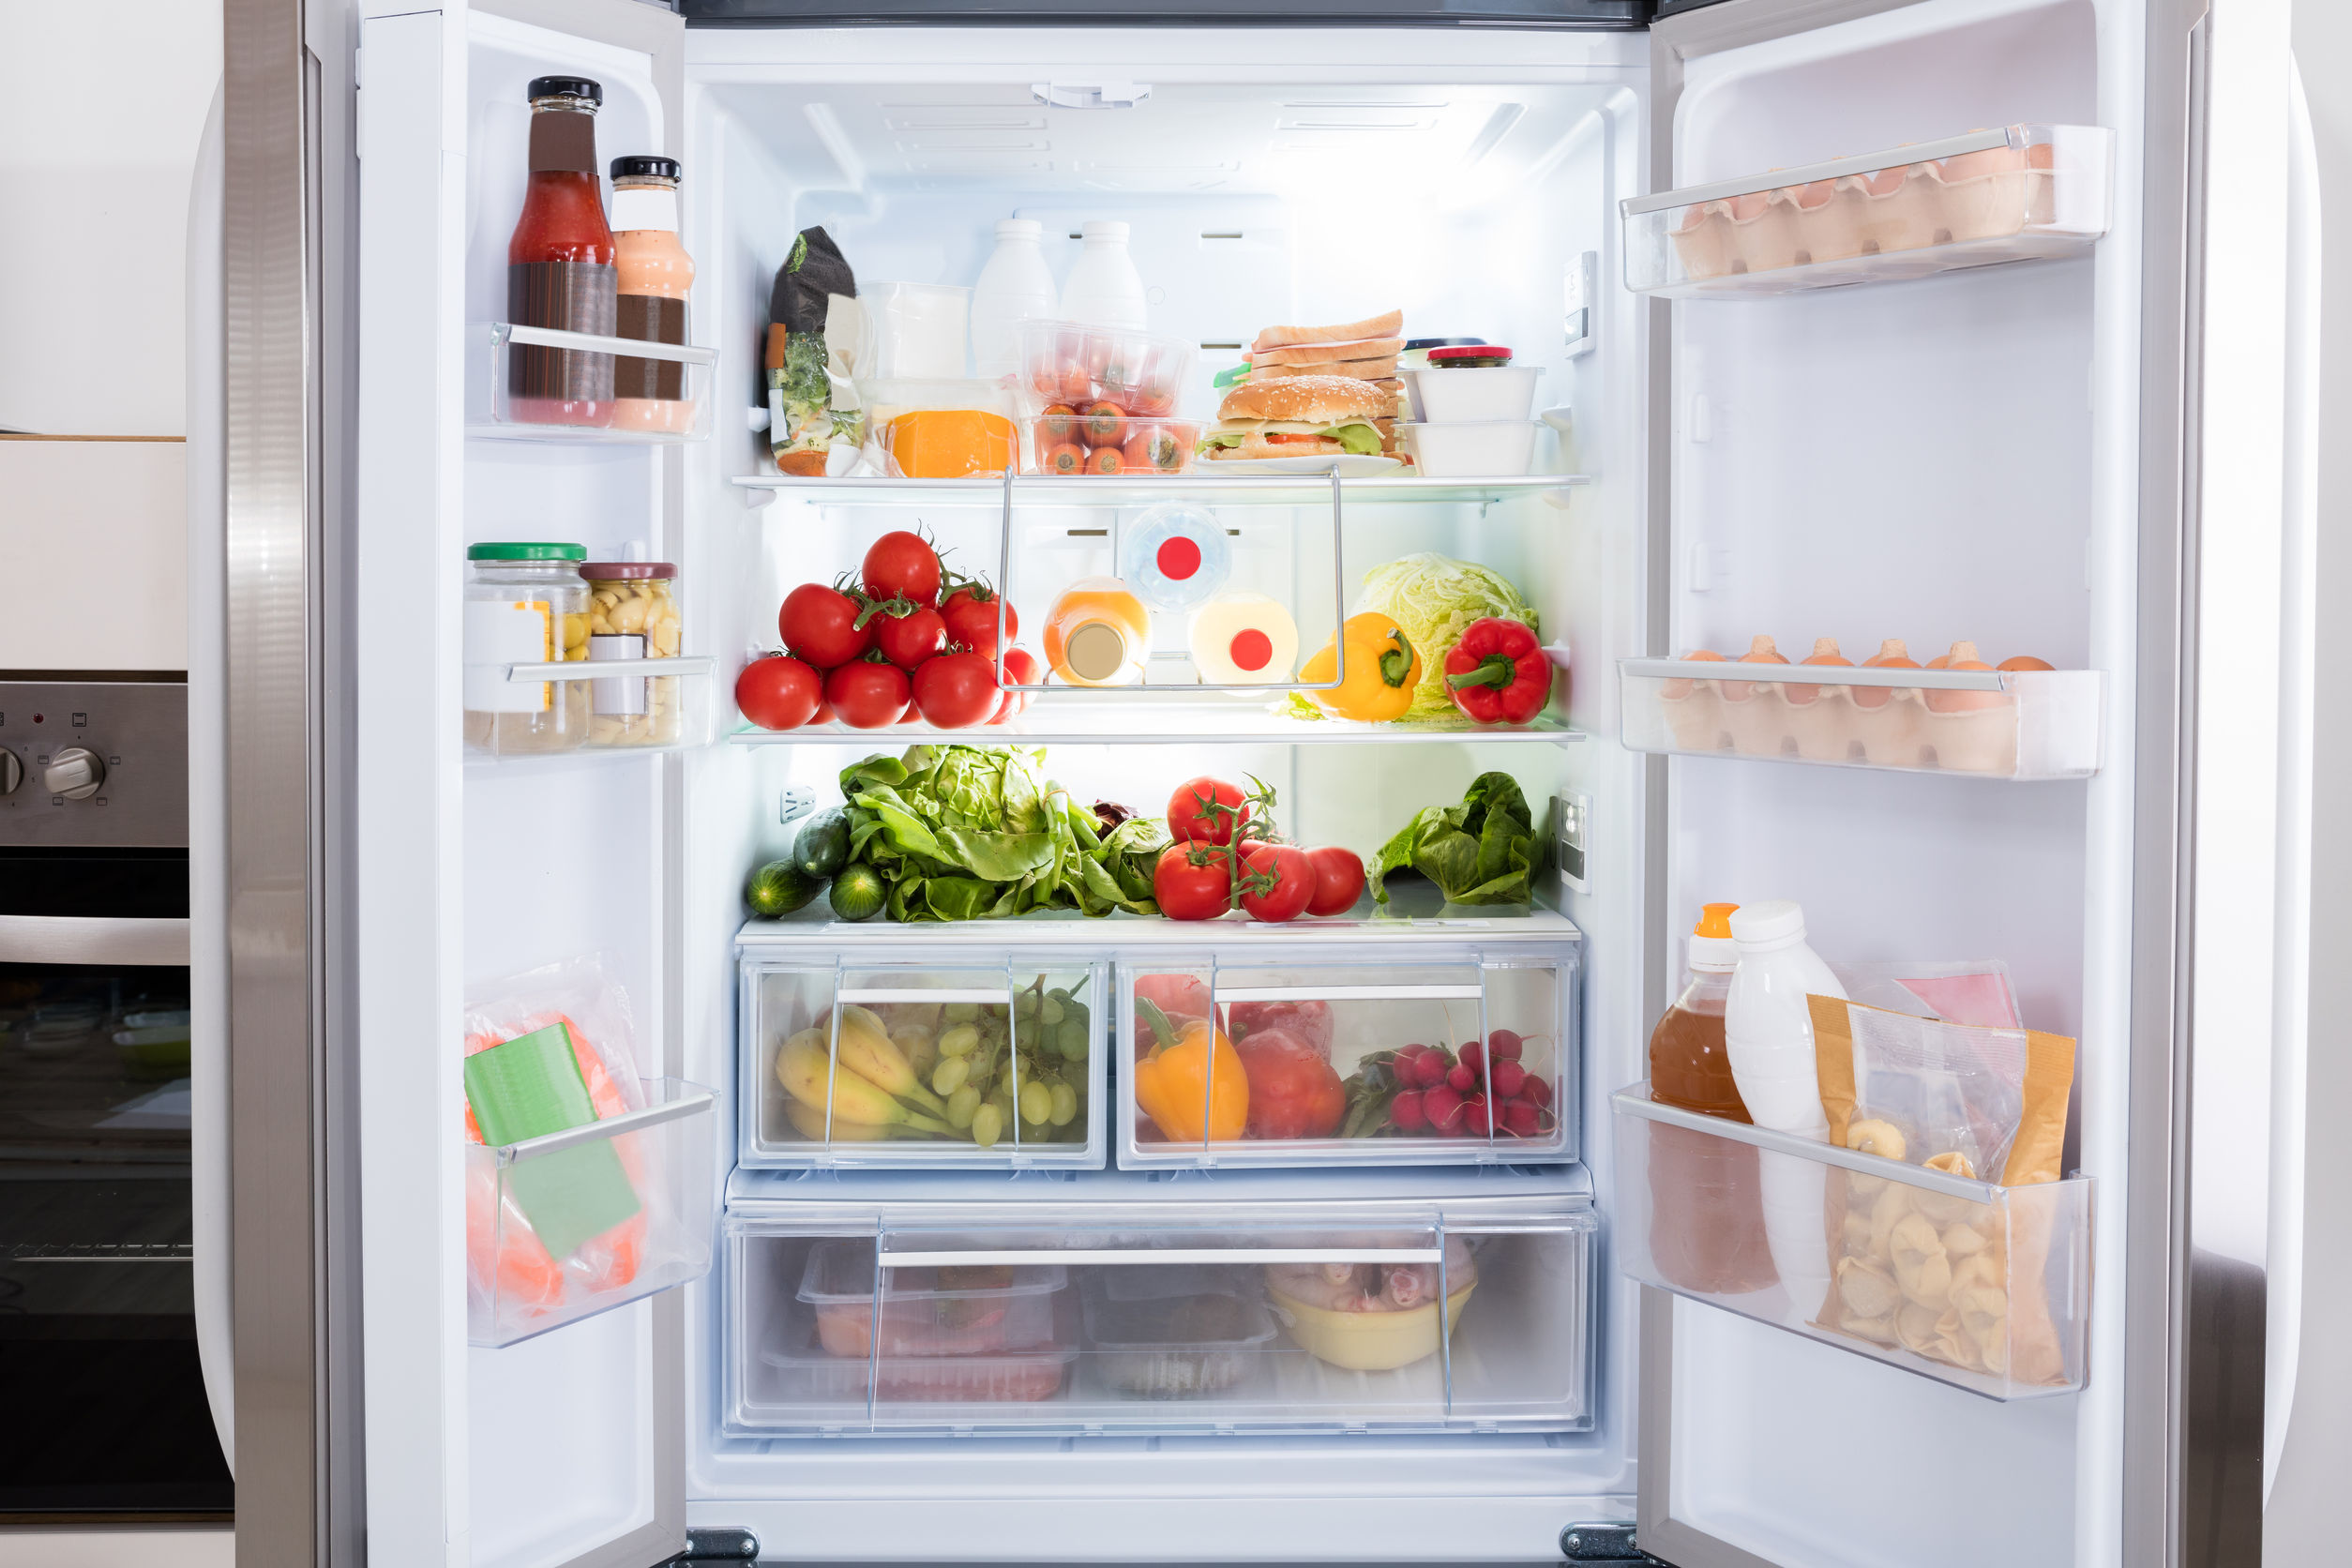 Refrigerator won't cool - How to fix a refrigerator that is not cooling